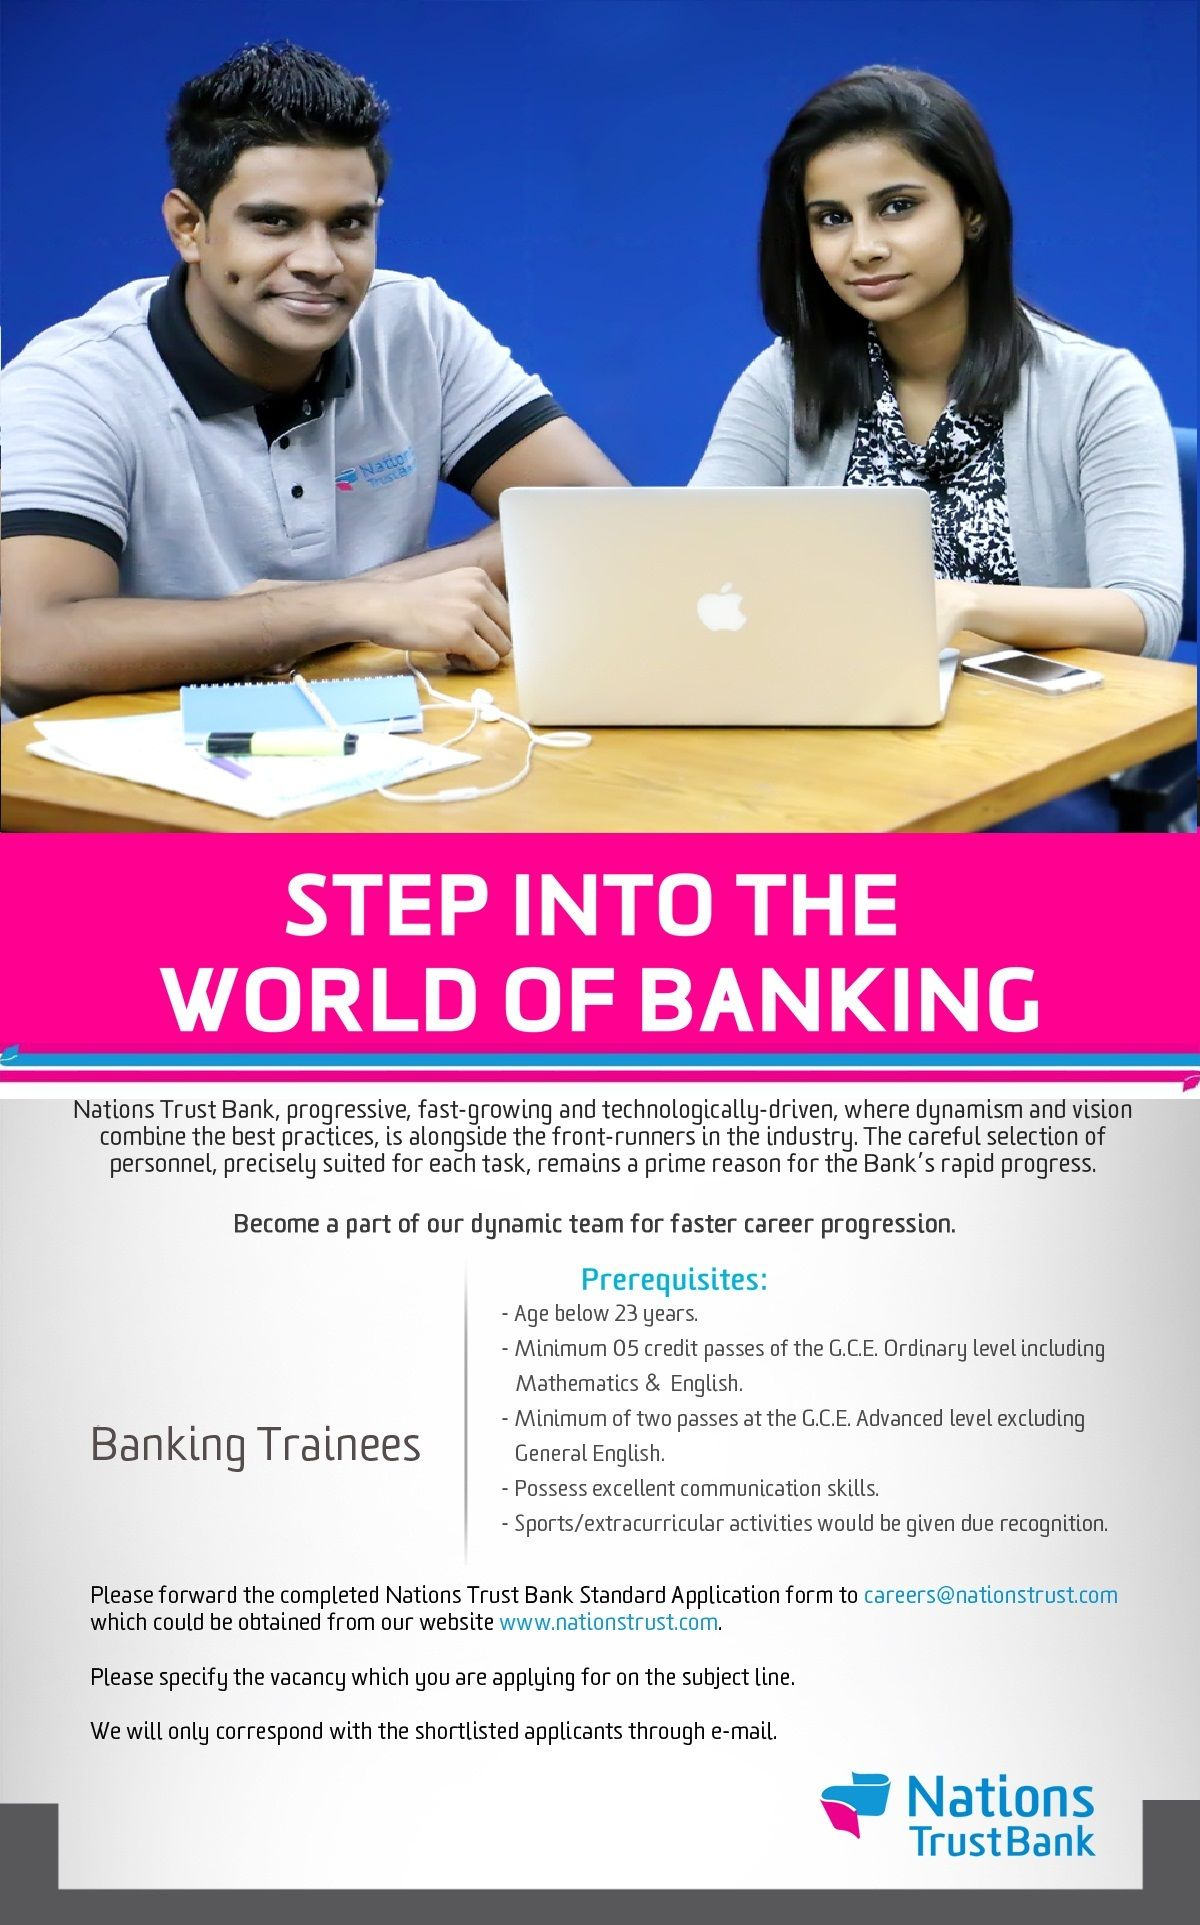 Trainee Banking Assistants at Nations Trust Bank PLC